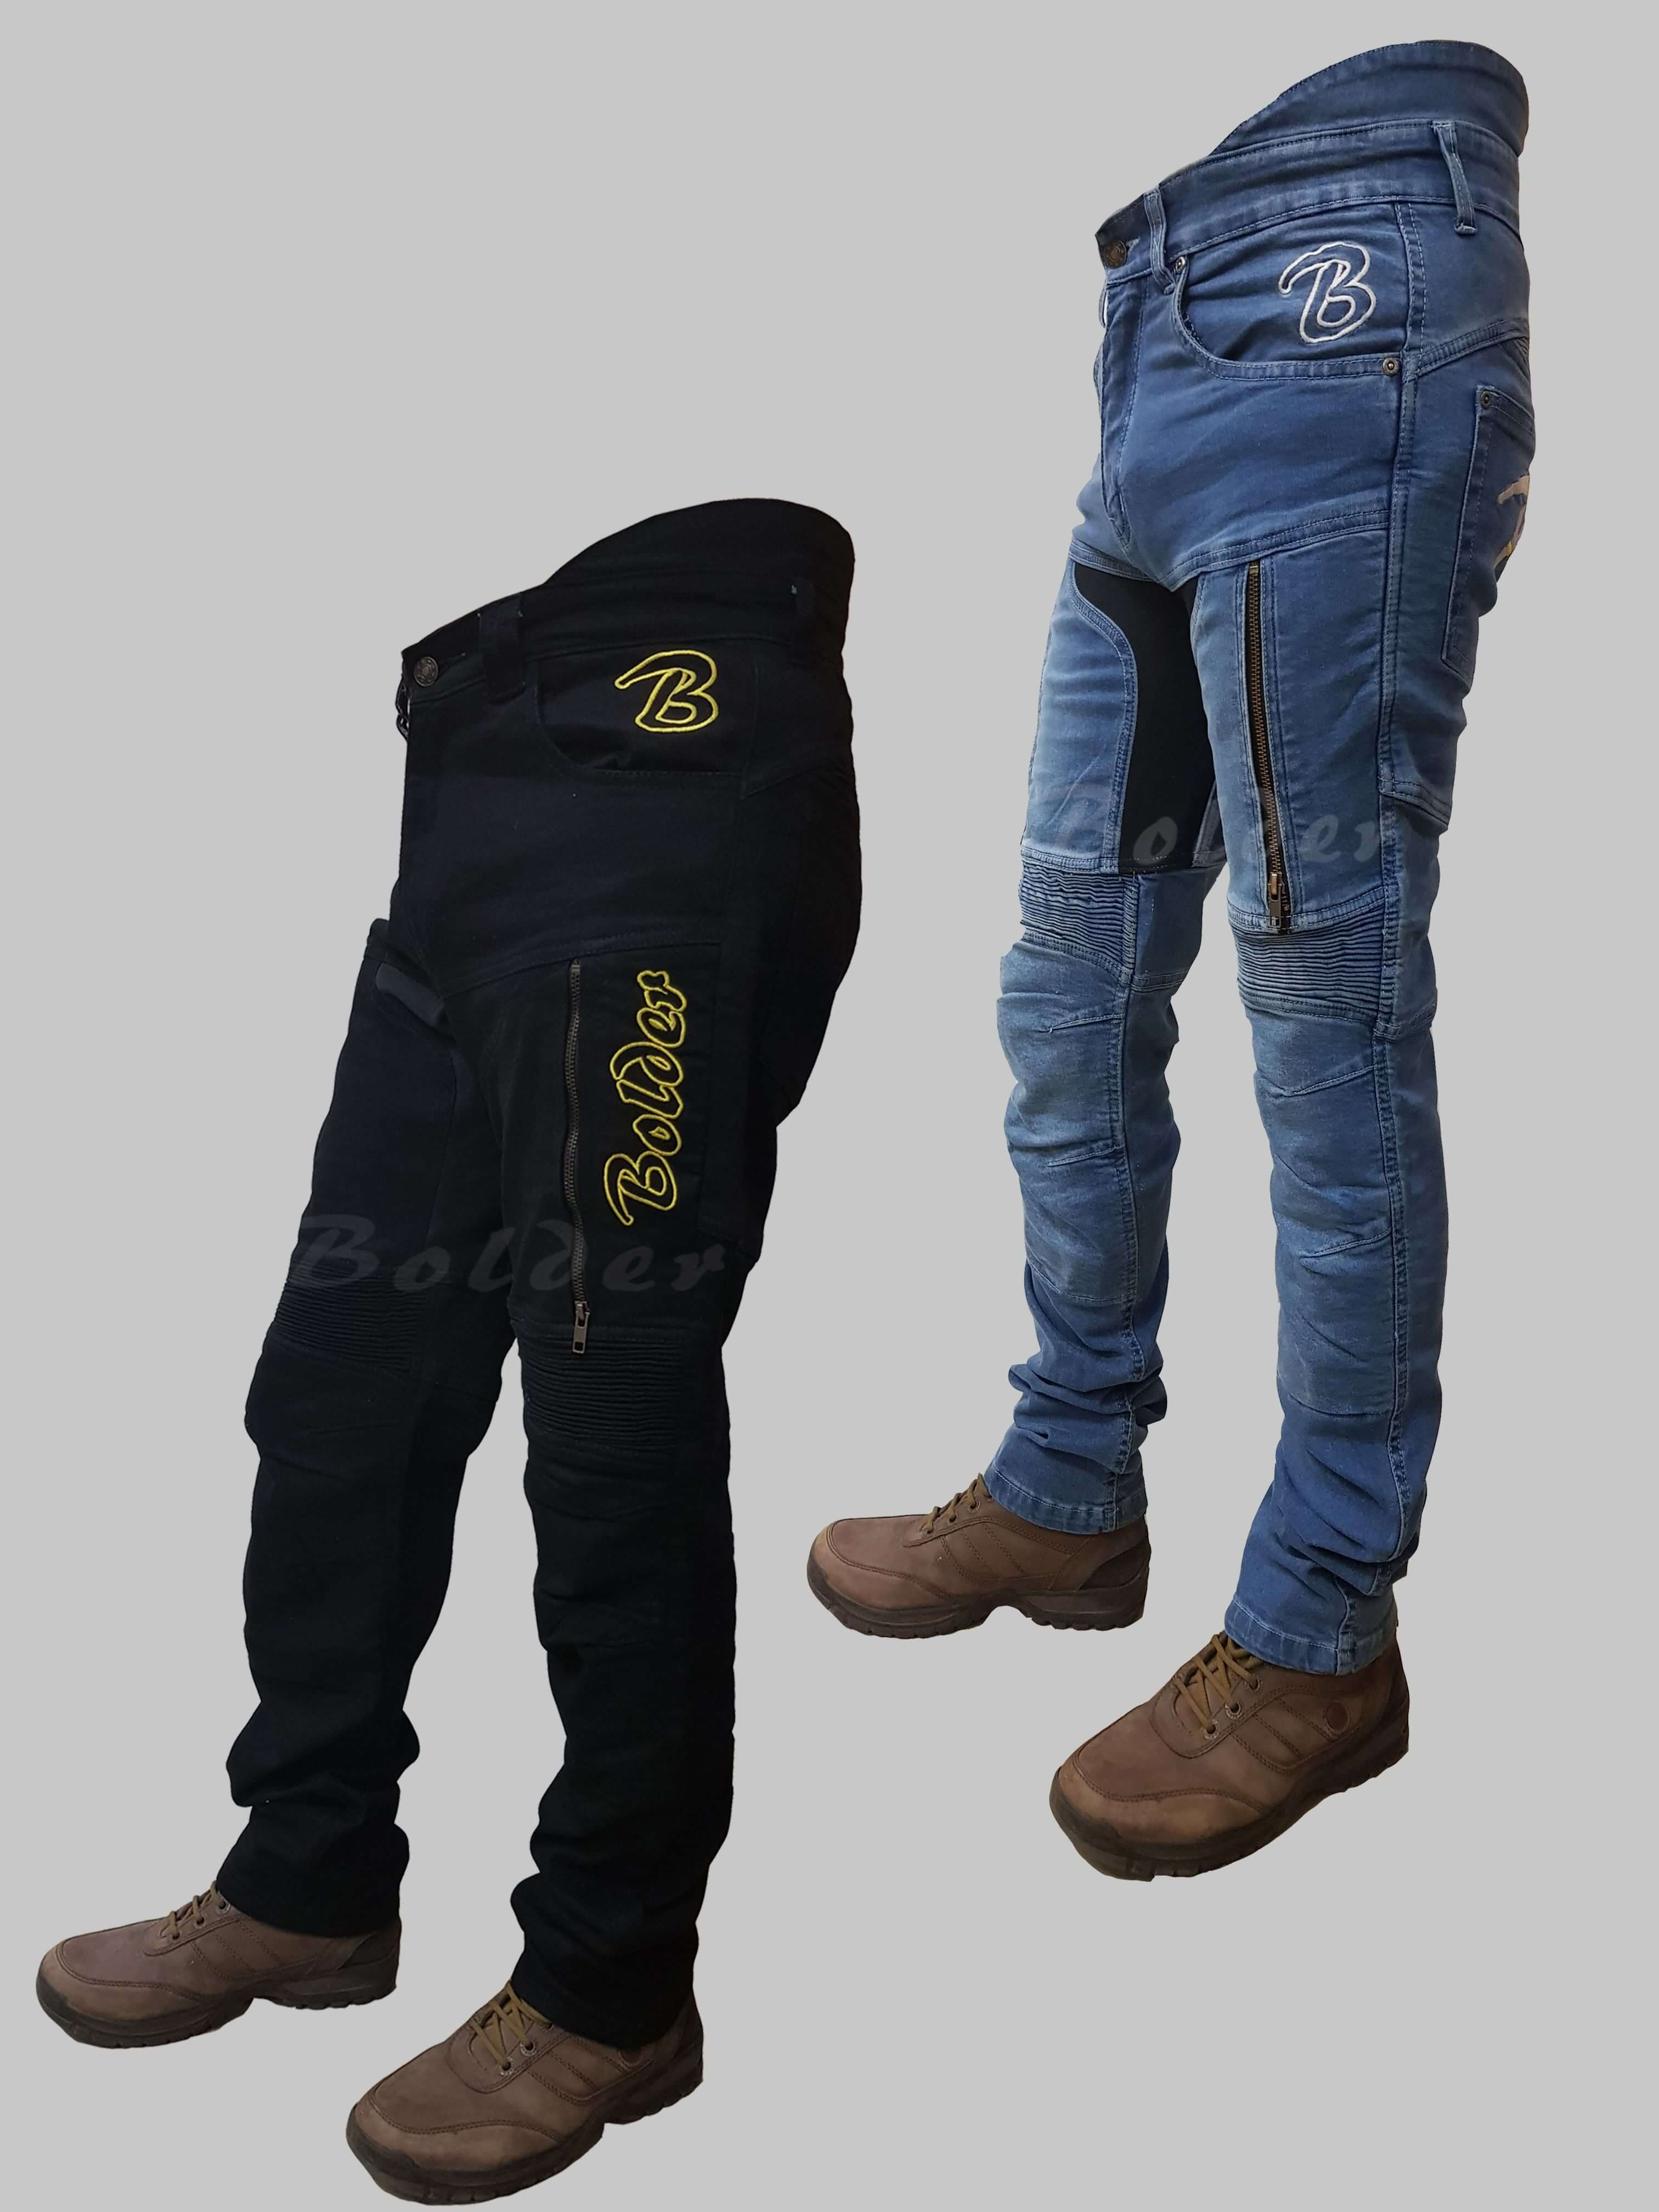 stretch-motorcycle-jeans-pants-4